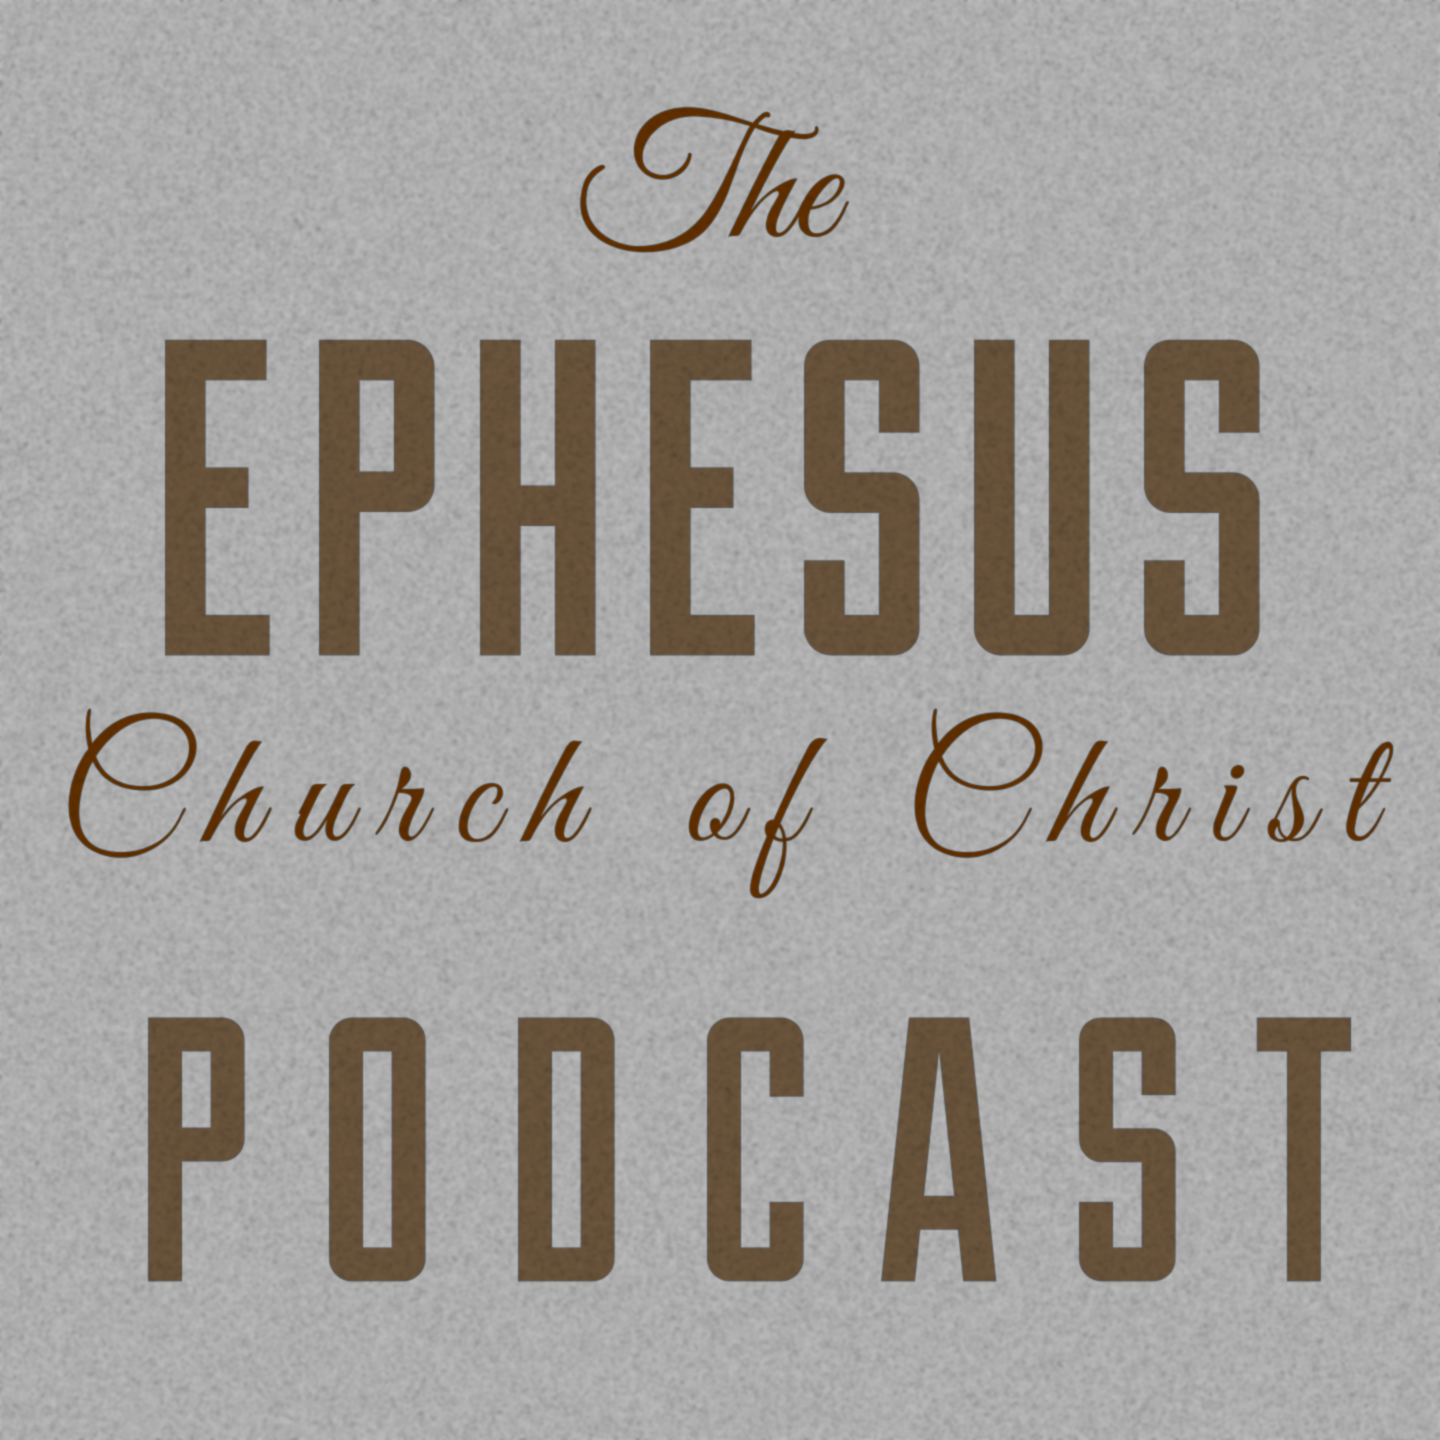 Ephesus Church of Christ - Athens, AL Podcast